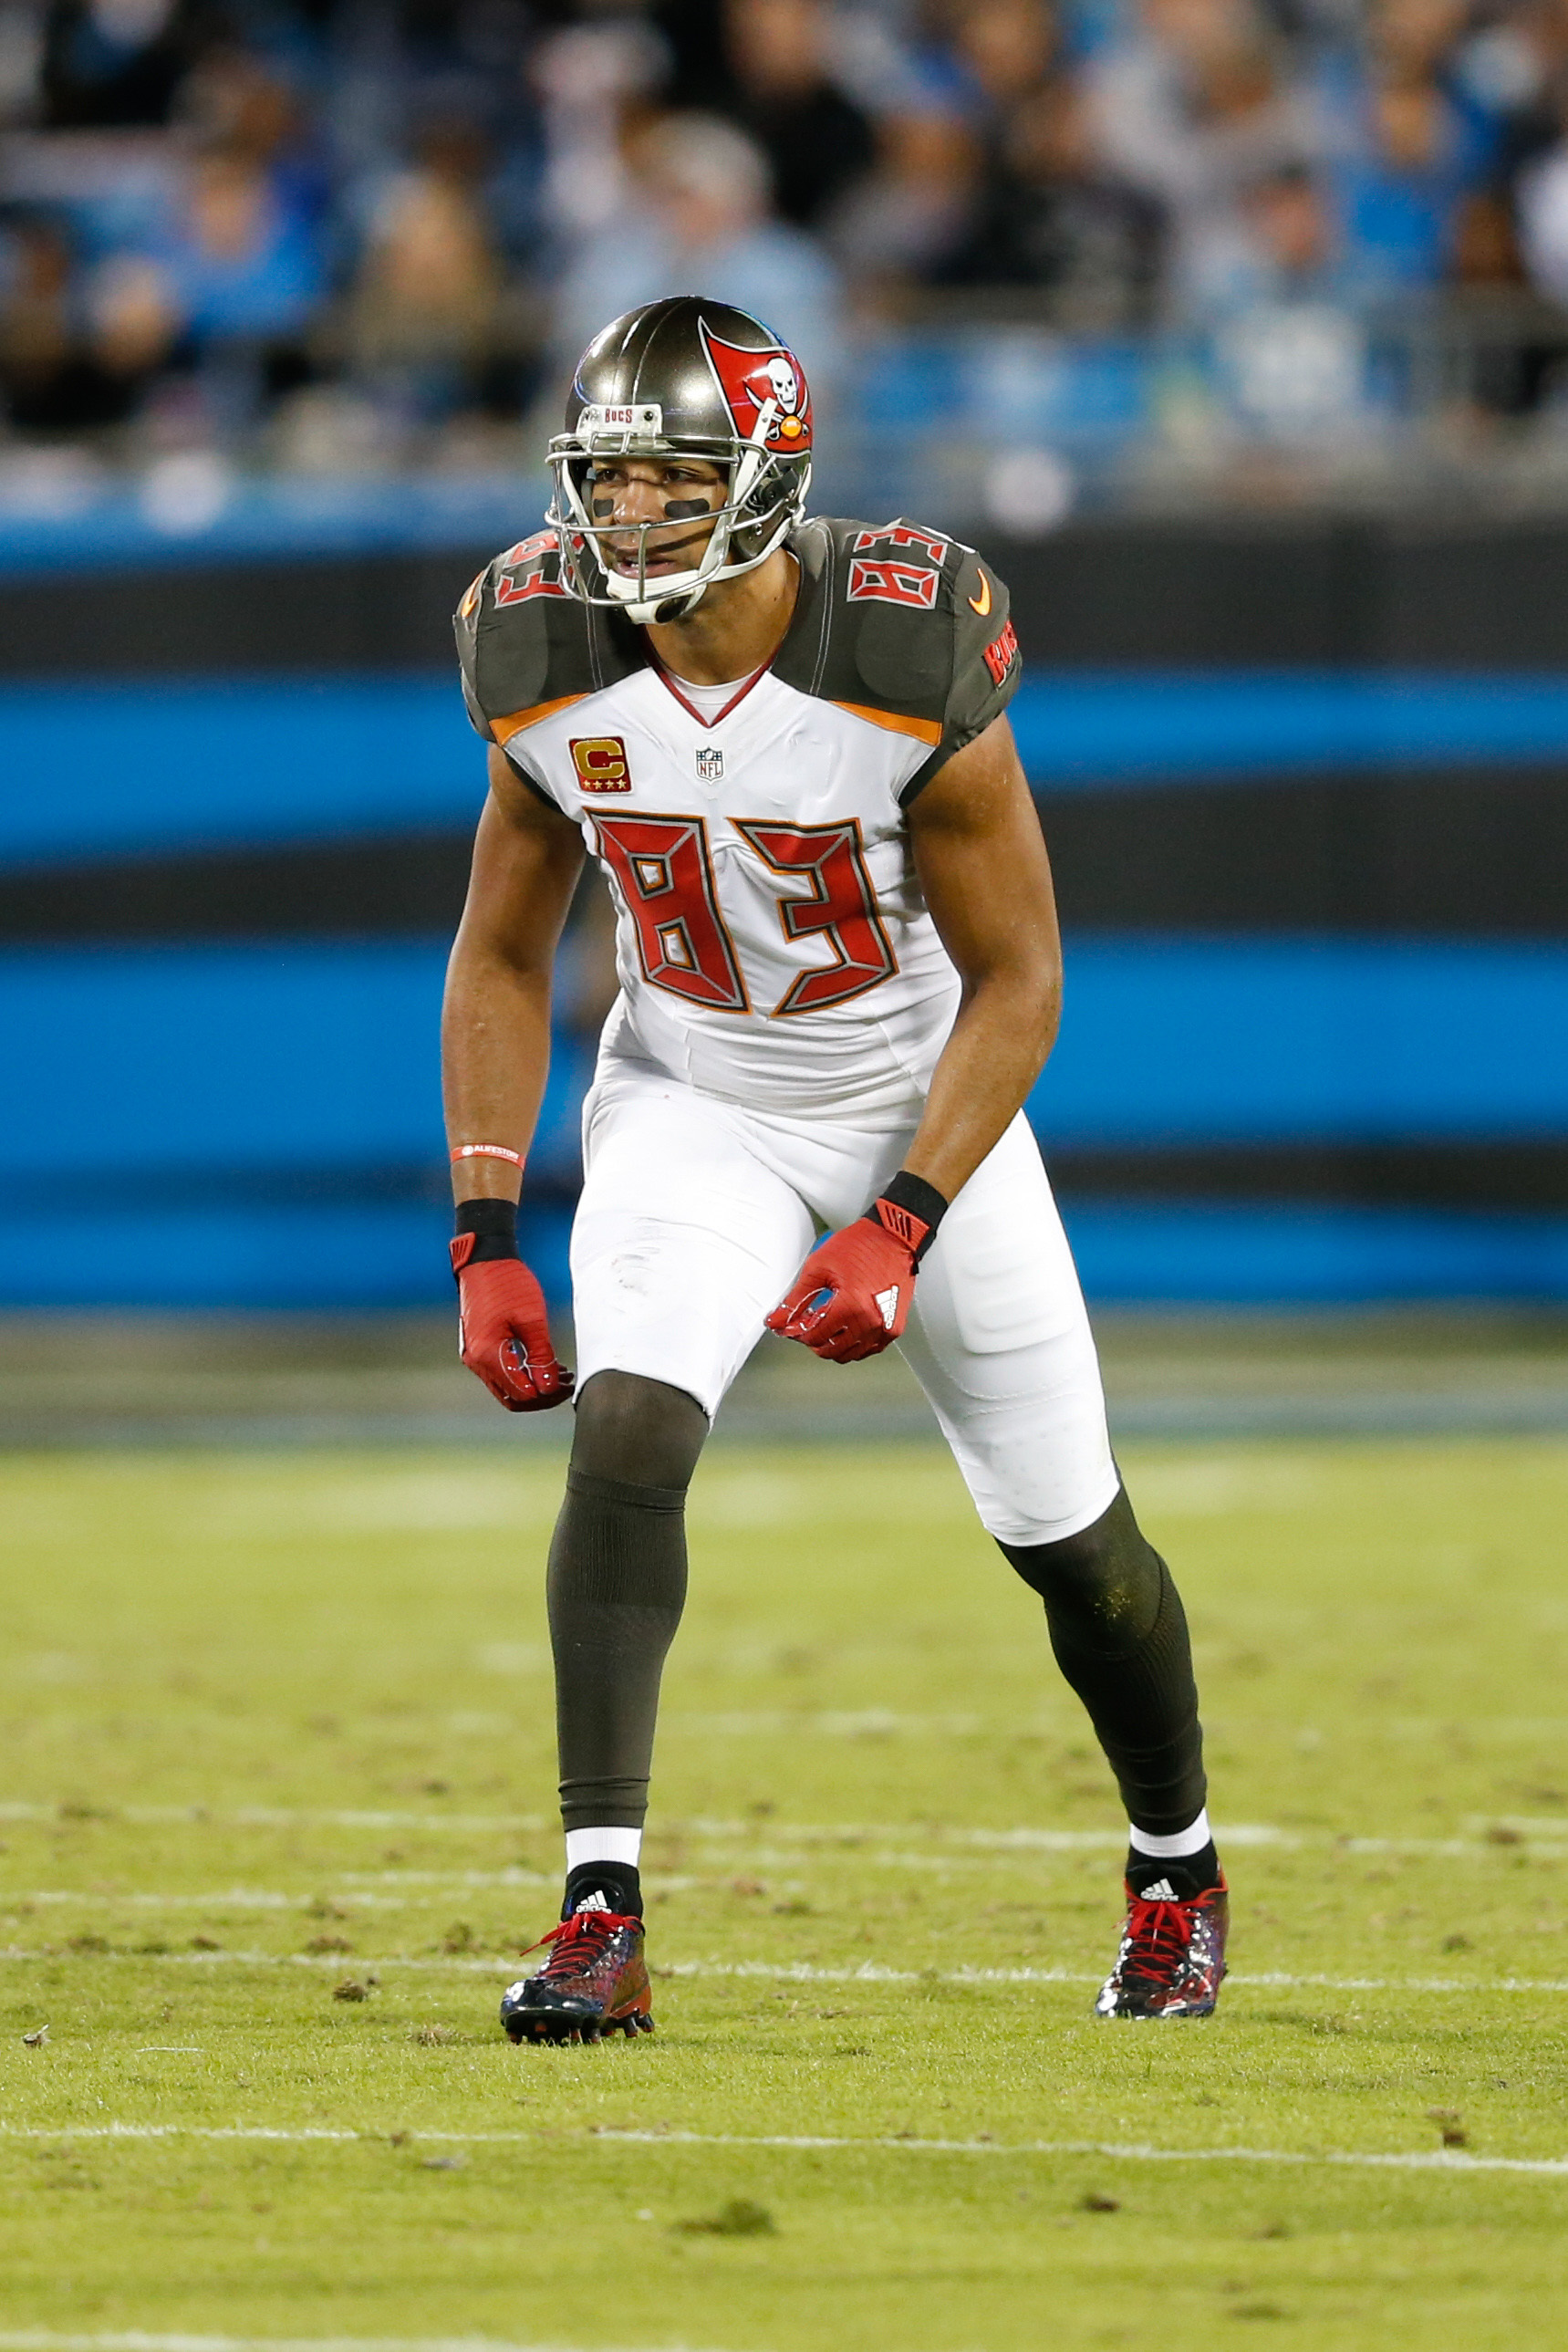 Vincent Jackson Buccaneers New Uniforms